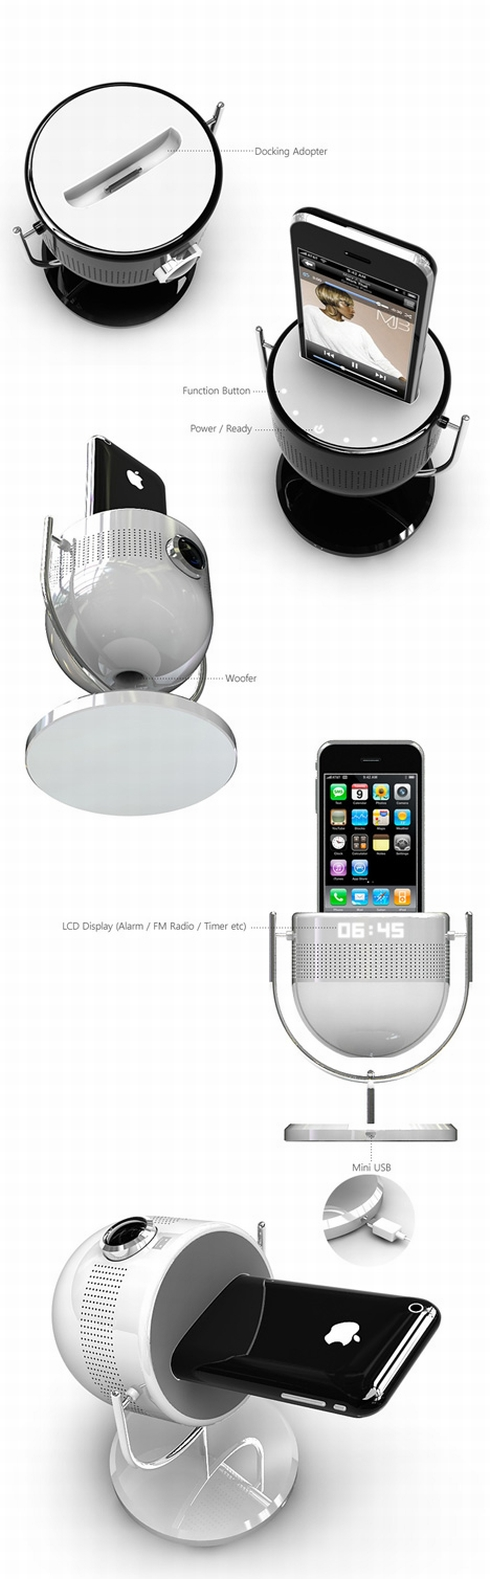 e-pod_iphone_dock_concept_3.jpg